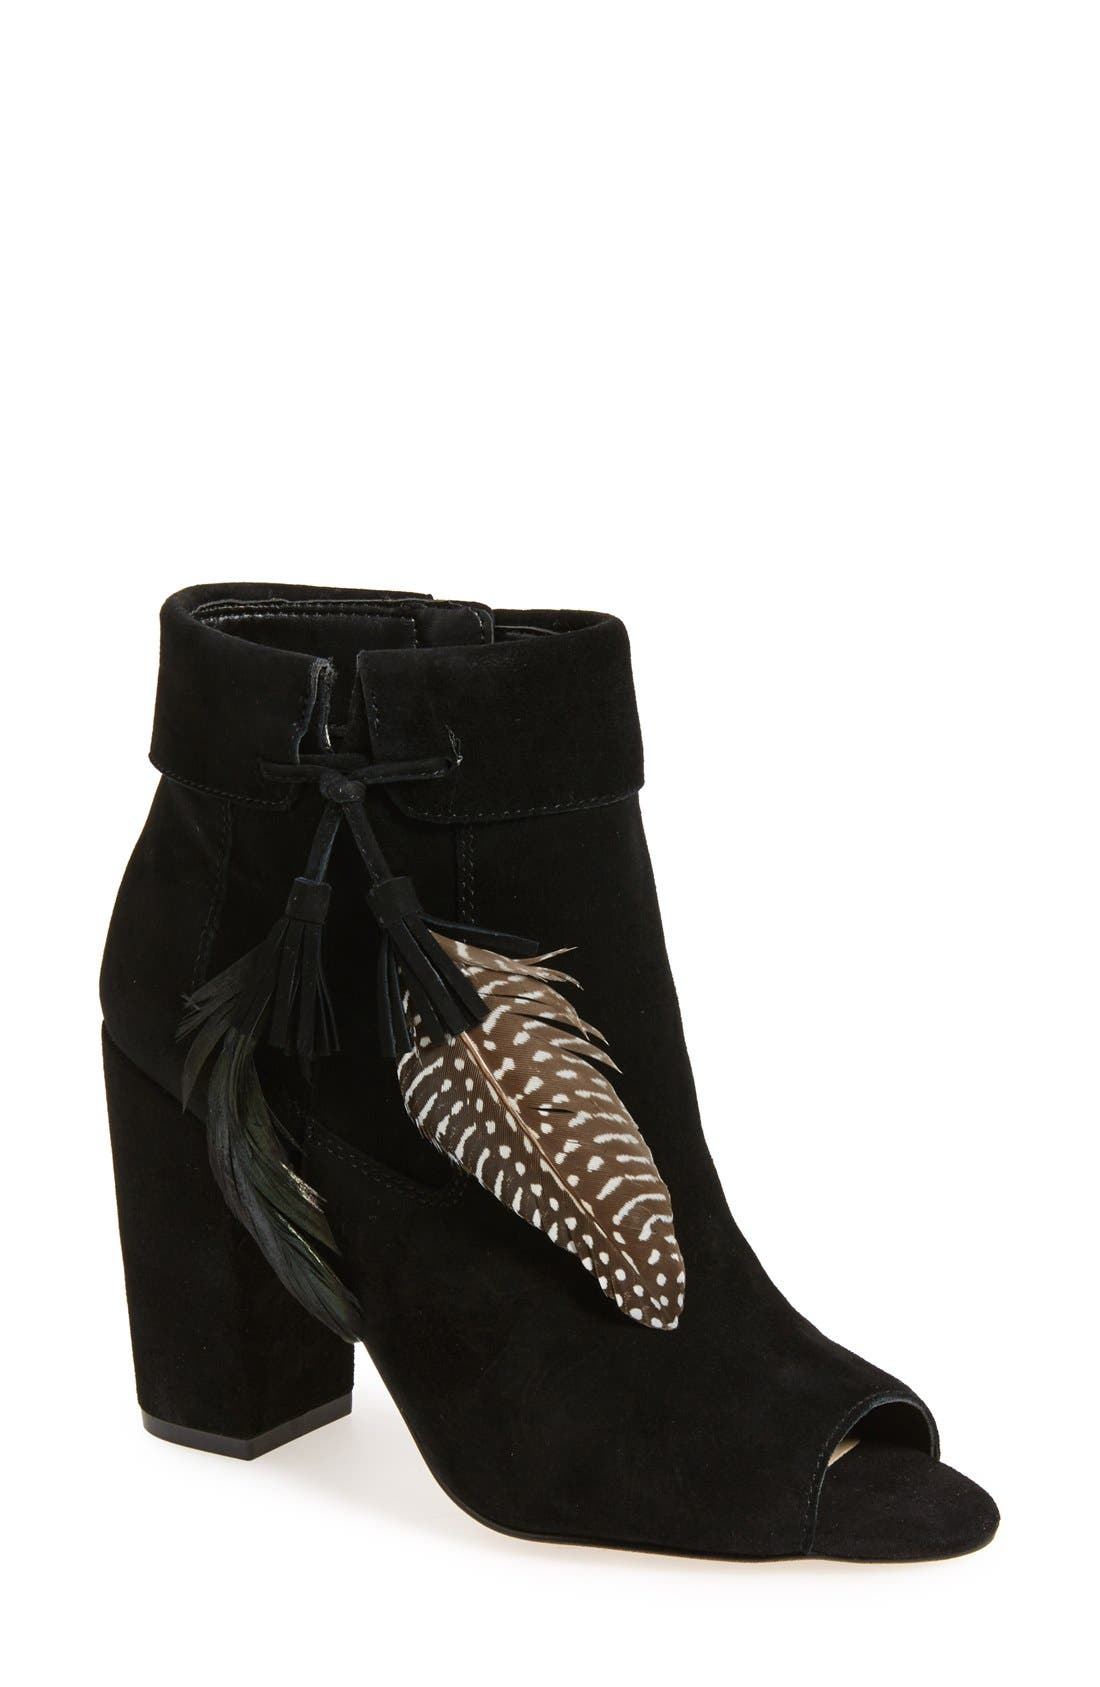 Alternate Image 1 Selected - Jessica Simpson 'Kailey' Feather Charm Peep Toe Bootie (Women)